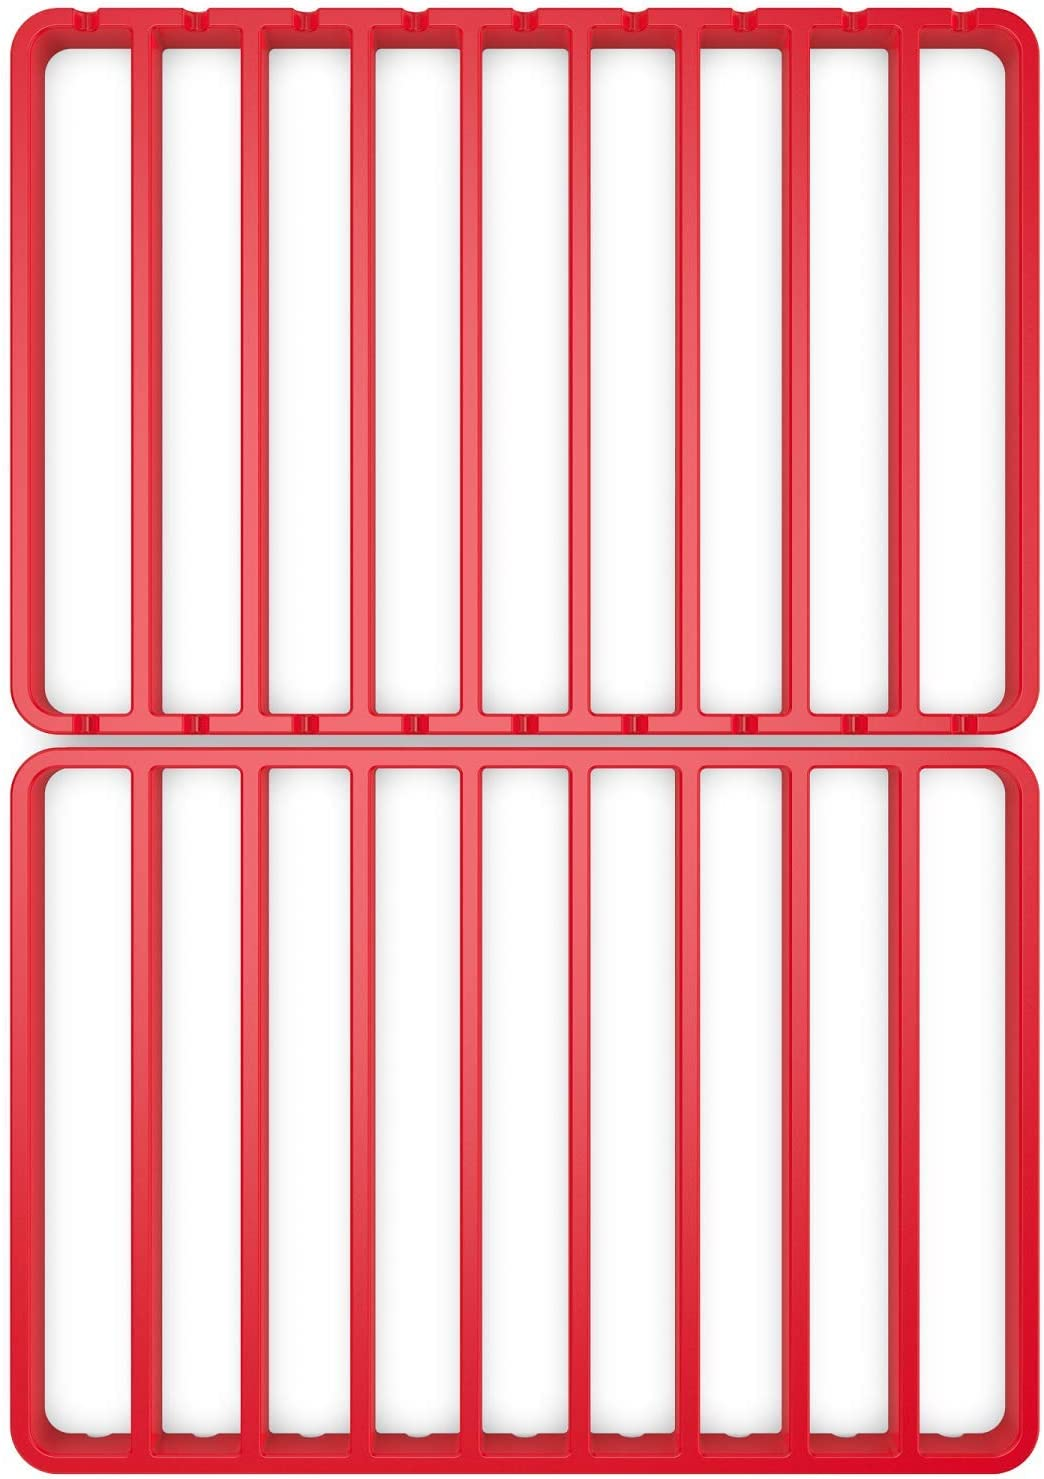 8.5 x 12 - Set of 2 STAN BOUTIQUE Roasting Racks for Oven Use with Pan Nonstick Cooking//Baking//Cooling Rack Fits Half Sheet Pan - Red Silicone